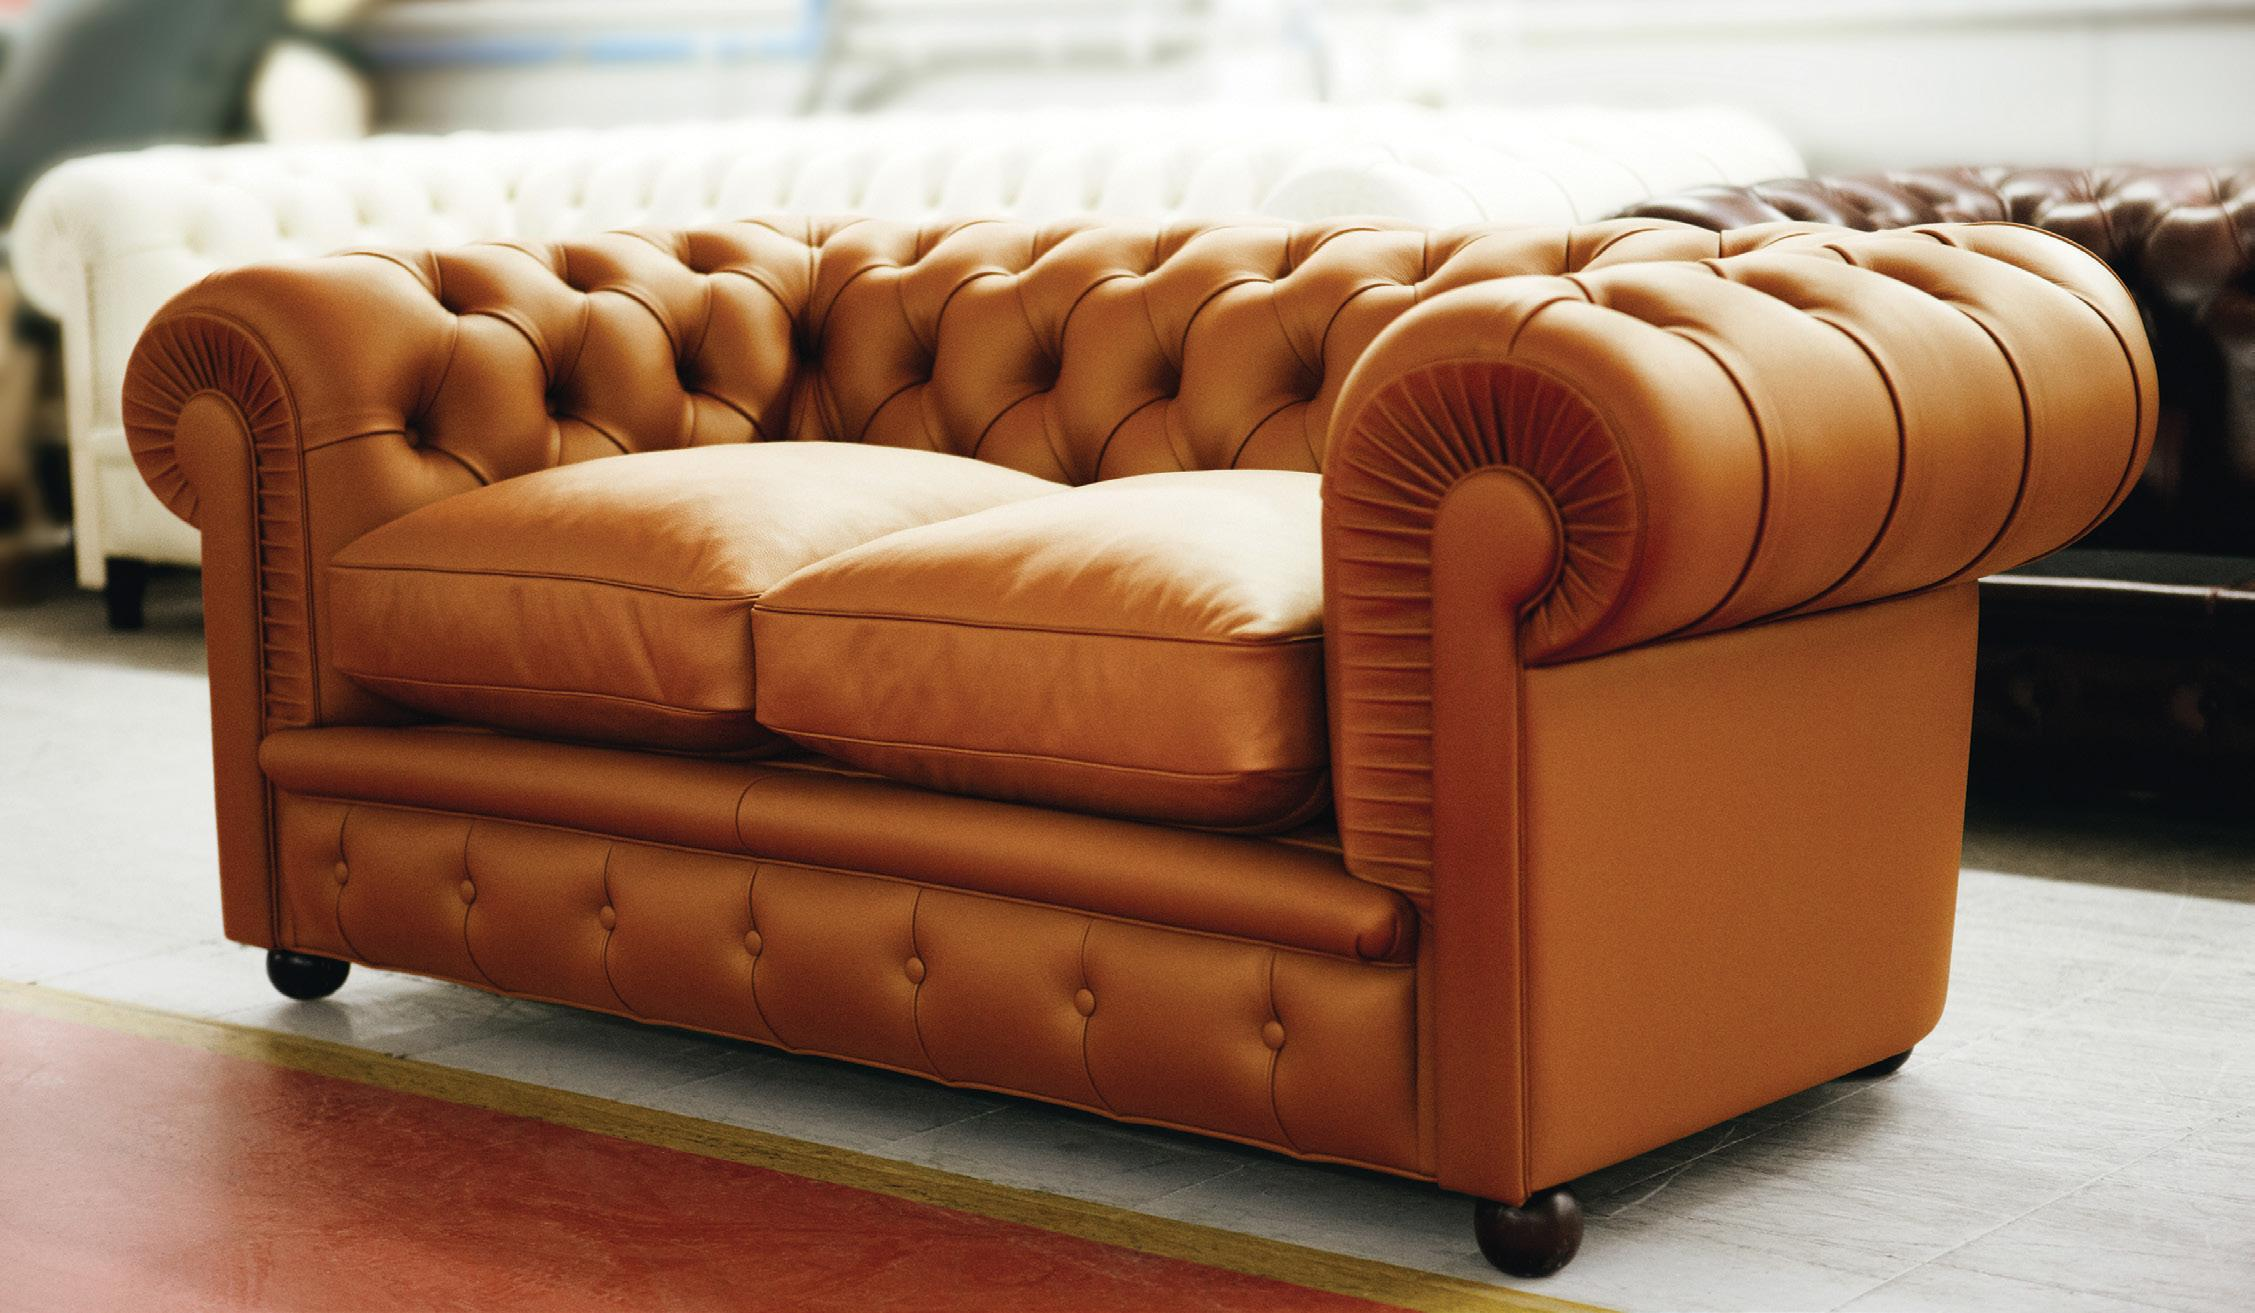 Page 38 of Invest in High Quality Furnishings For Long Term Enjoyment